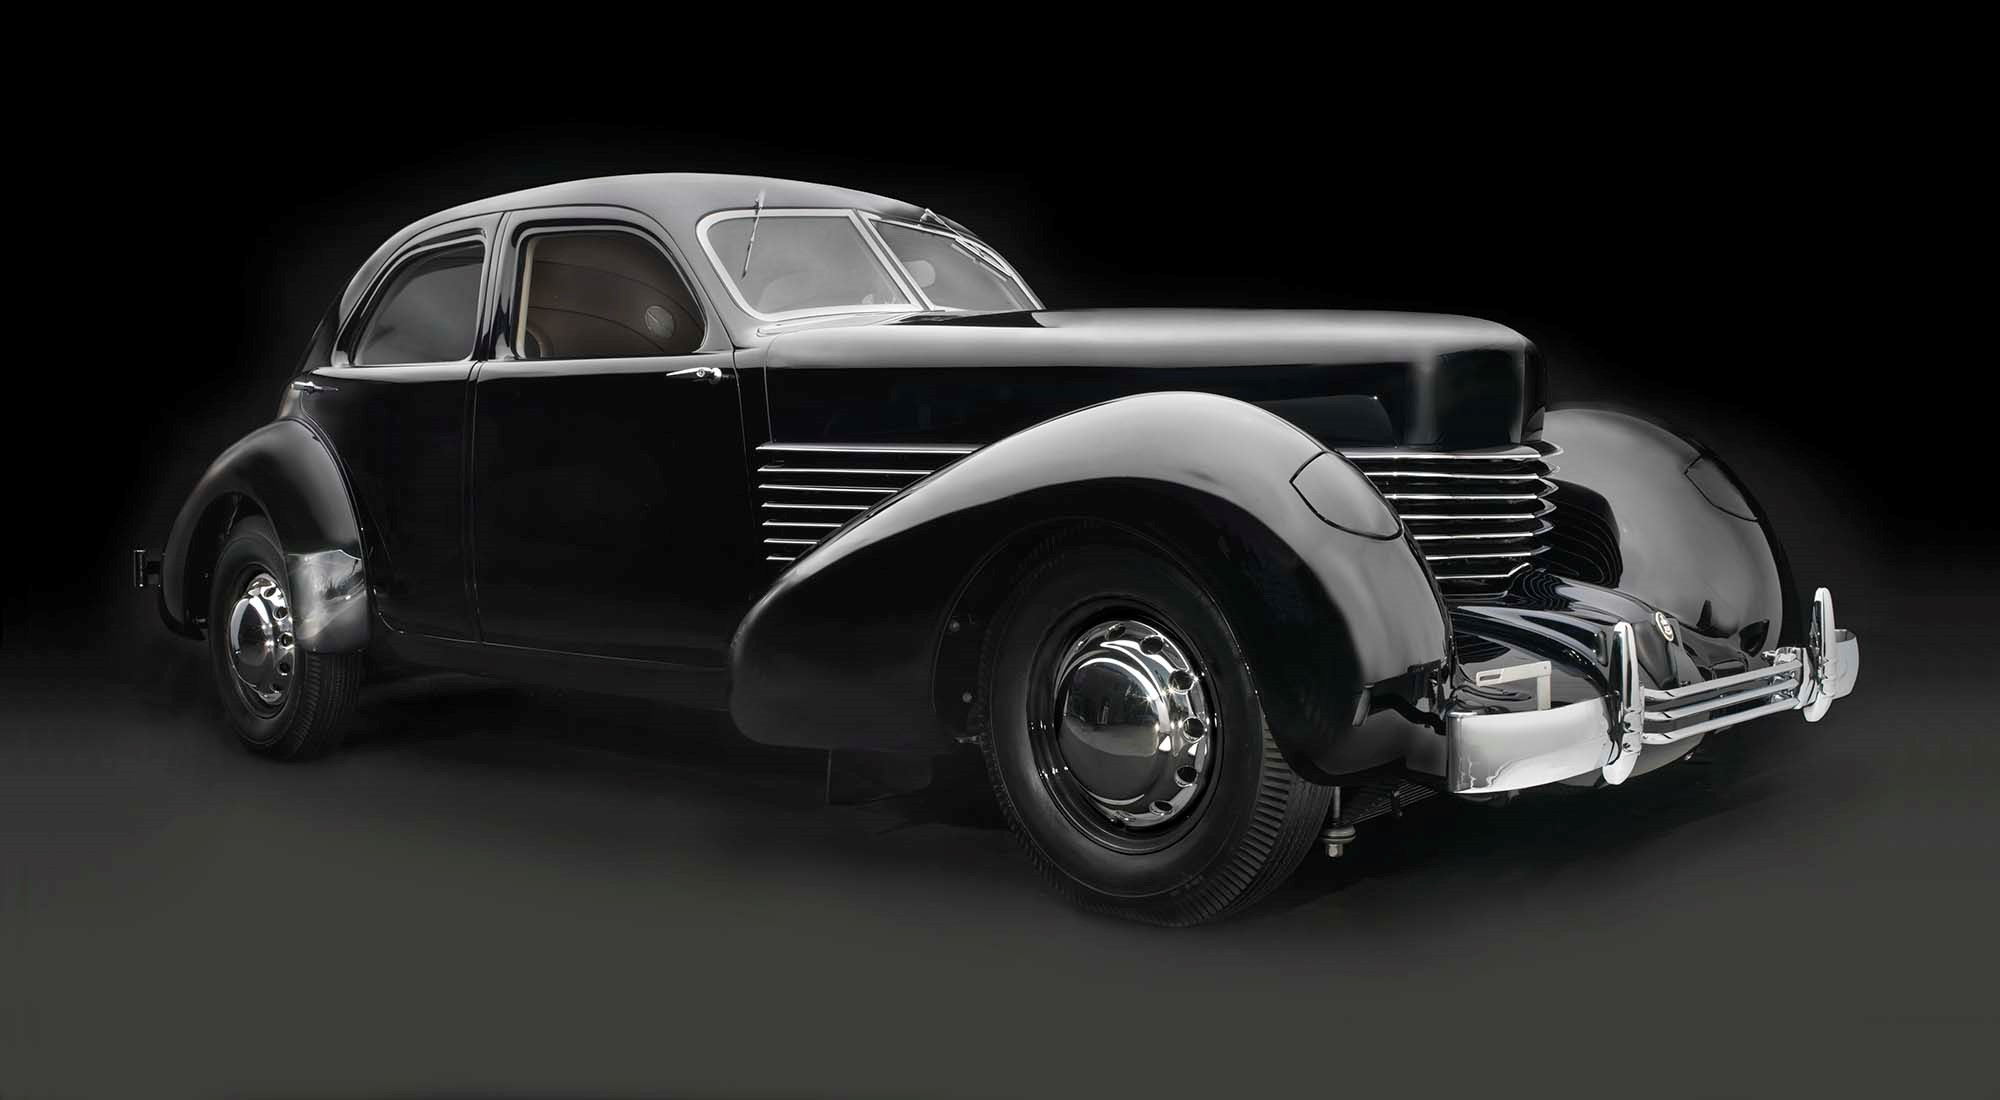 3d Design Online Sculpted In Steel Art Deco Automobiles And Motorcycles